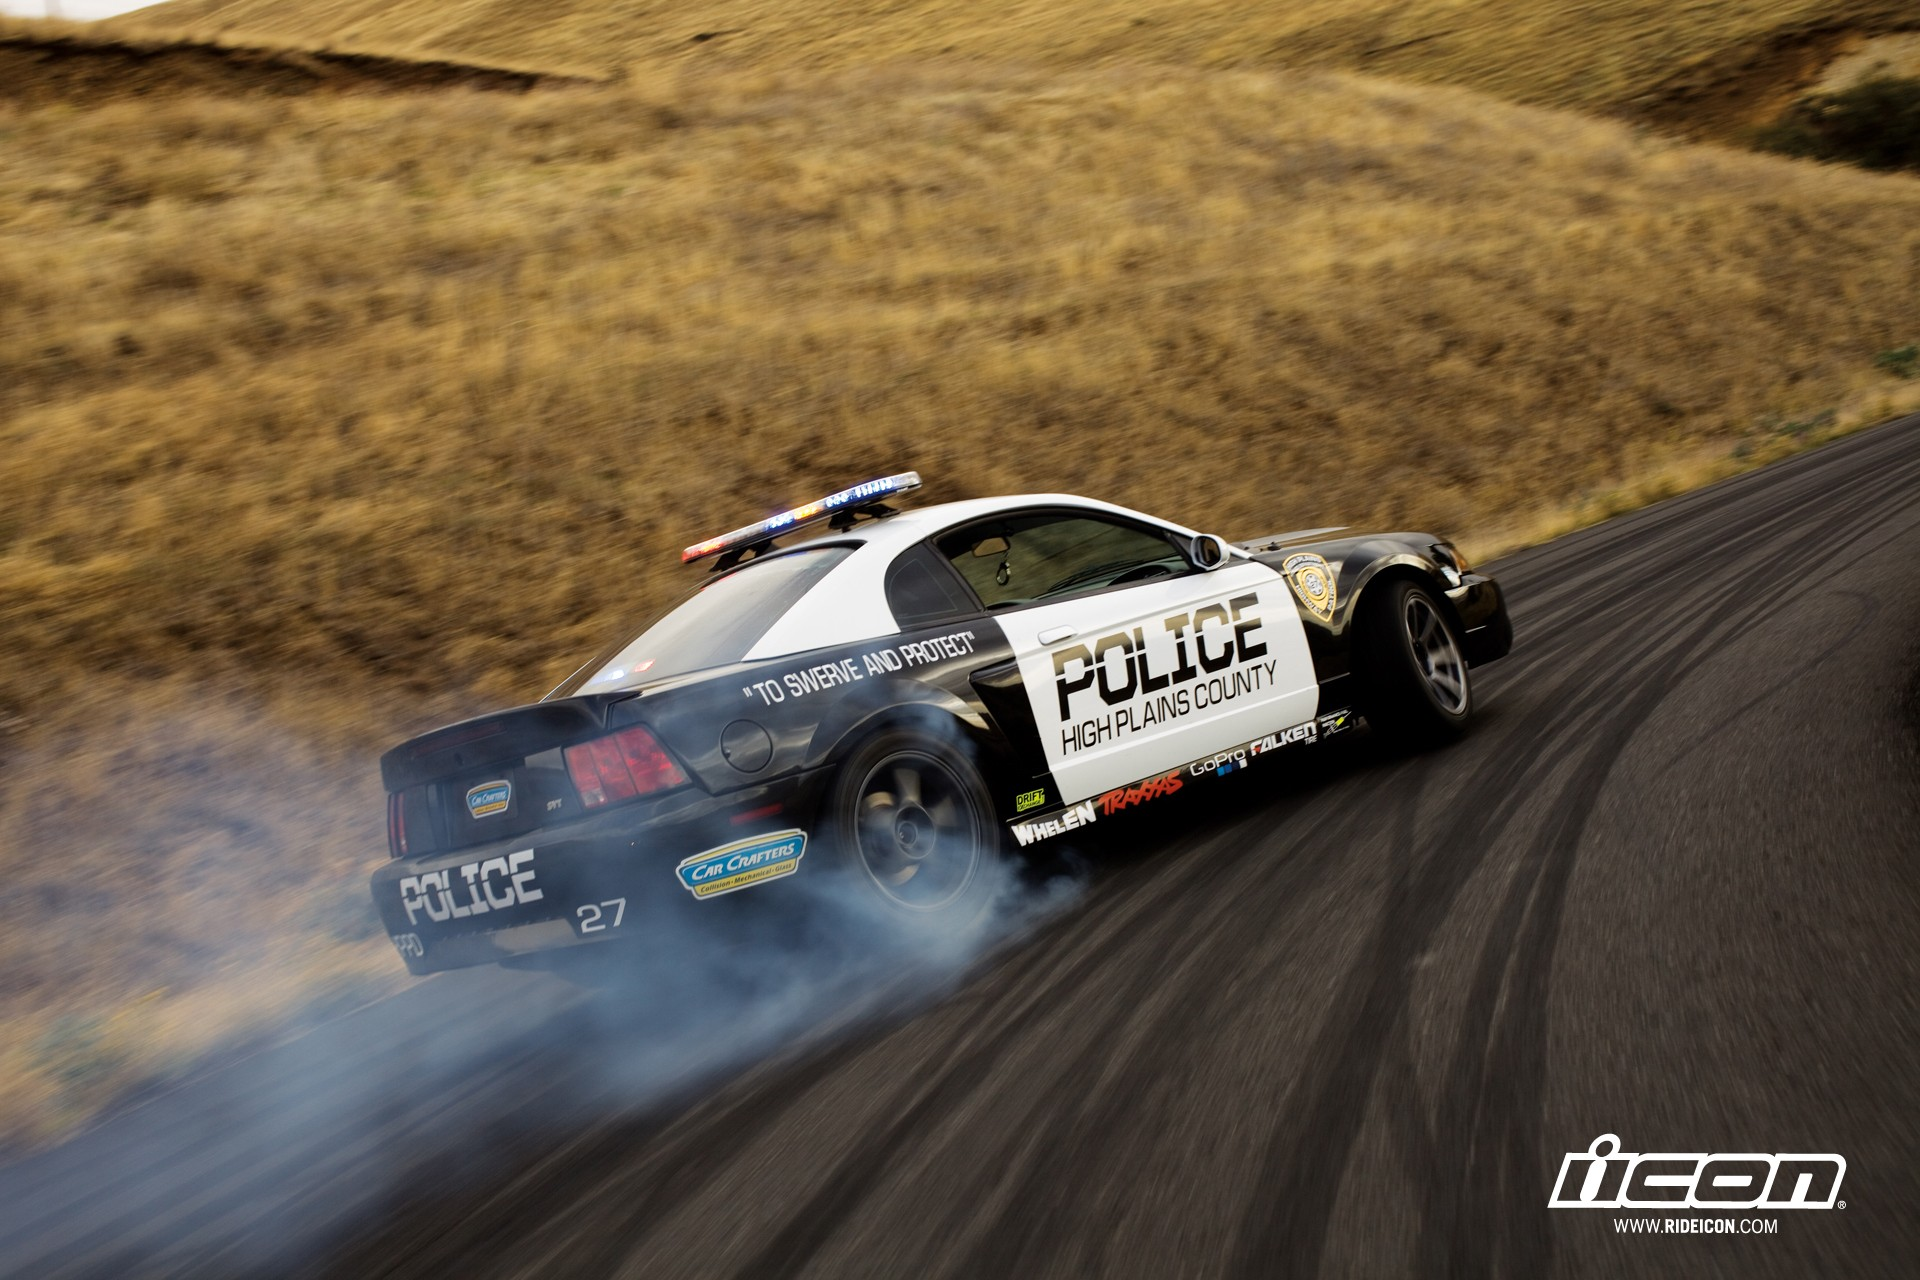 Tokyo Drift Girls Wallpaper Car Muscle Cars Drift Pursuit Icon Police Police